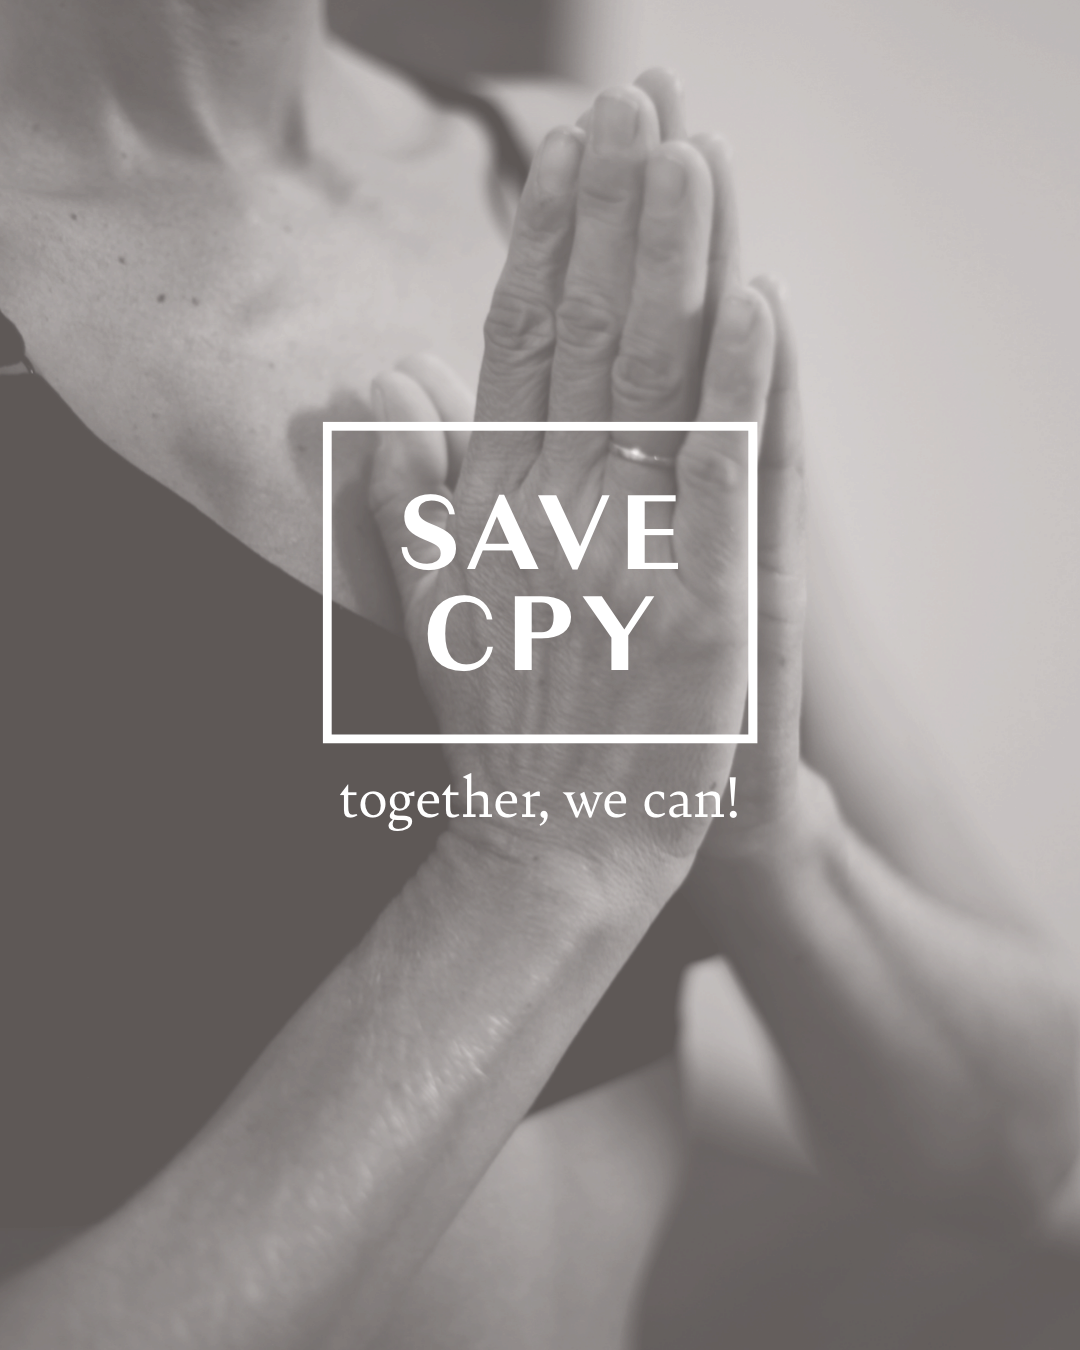 It's for real. 2020 hit everyone hard and it really hit your fave yoga studio really hard. We are doing everything we can on our end to #saveCPY. Here's what you can to help!